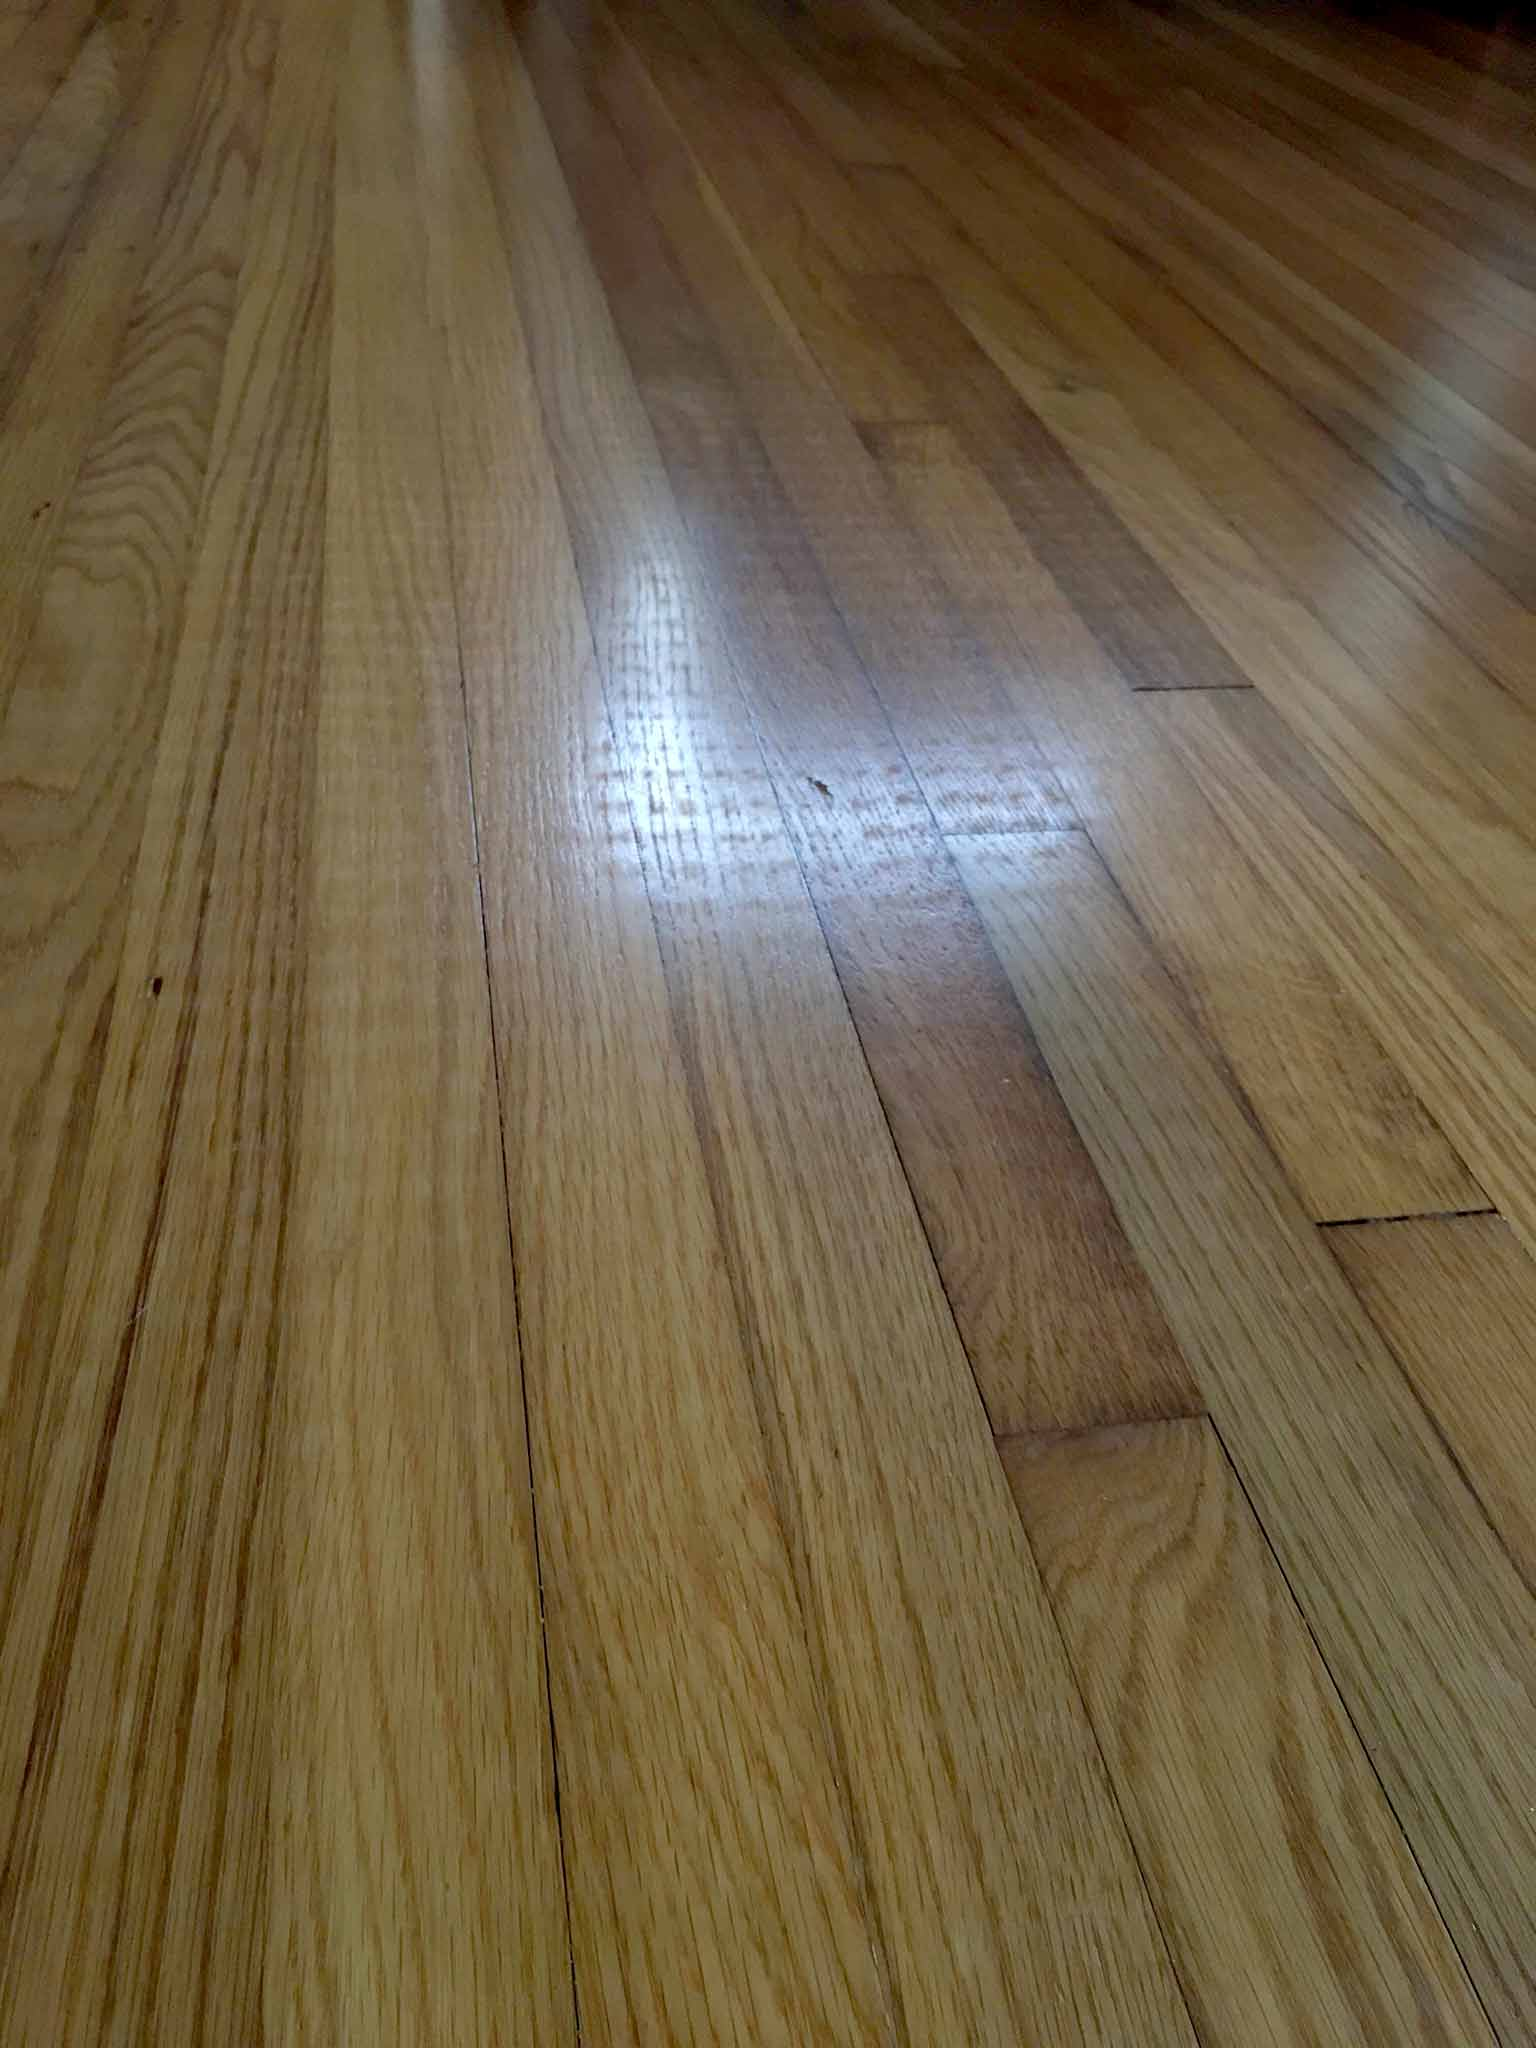 Damage to hardwood floors caused by jute rug - That Homebird Life Blog